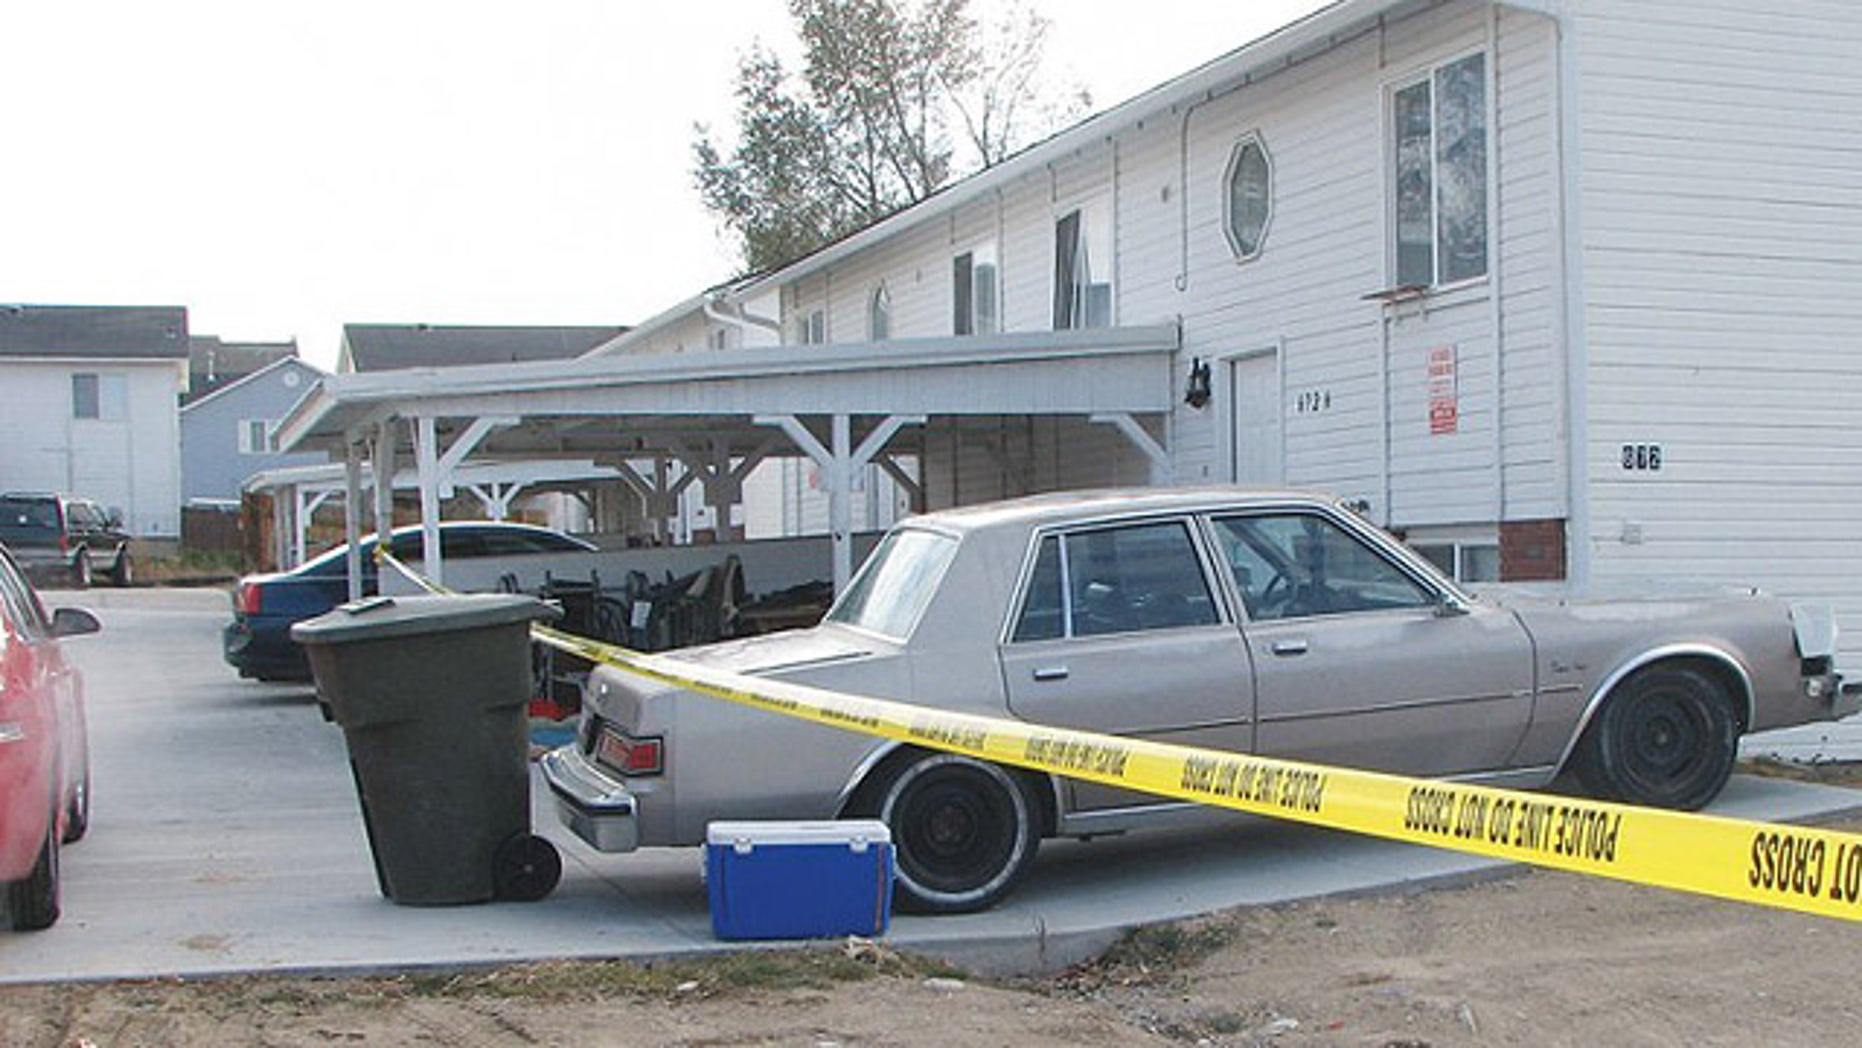 Neighbors told the Idaho State Journal that Kiarra Kimbel has two other children who live with her at her Pocatello apartment, seen above. (Idaho State Journal)